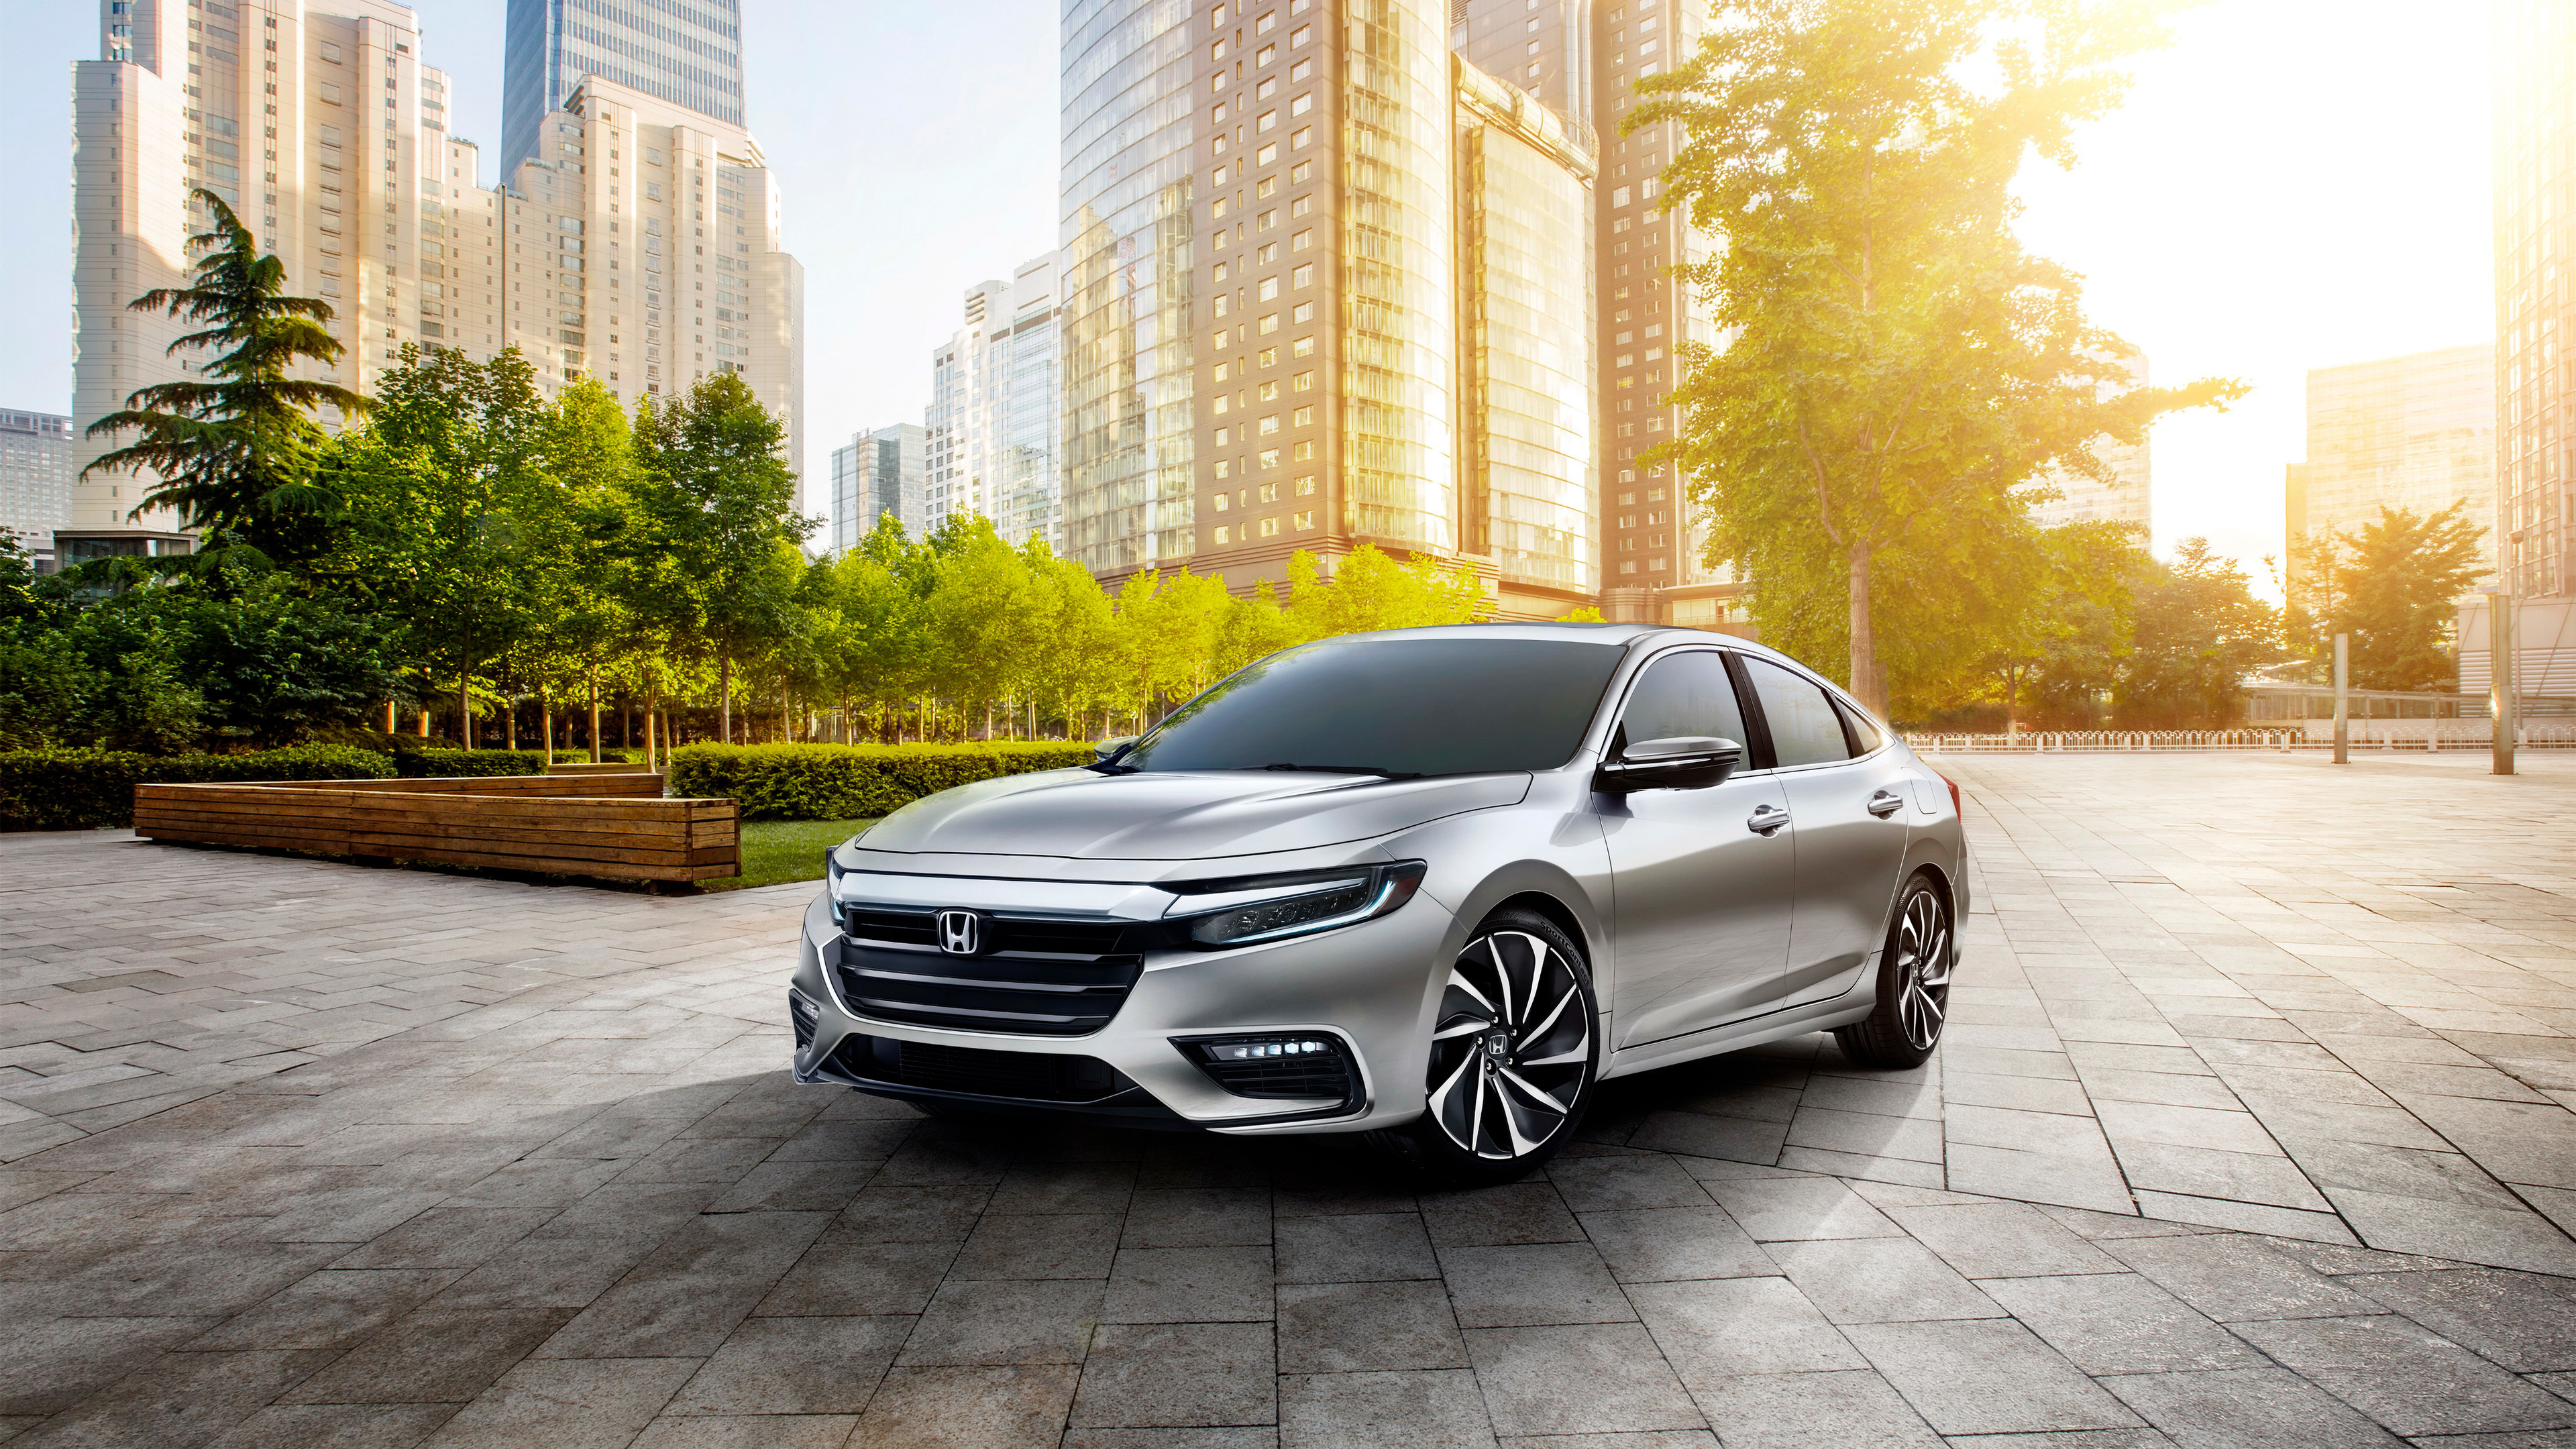 honda insight prototype 2019 1539108983 - Honda Insight Prototype 2019 - honda wallpapers, honda insight wallpapers, hd-wallpapers, cars wallpapers, 4k-wallpapers, 2019 cars wallpapers